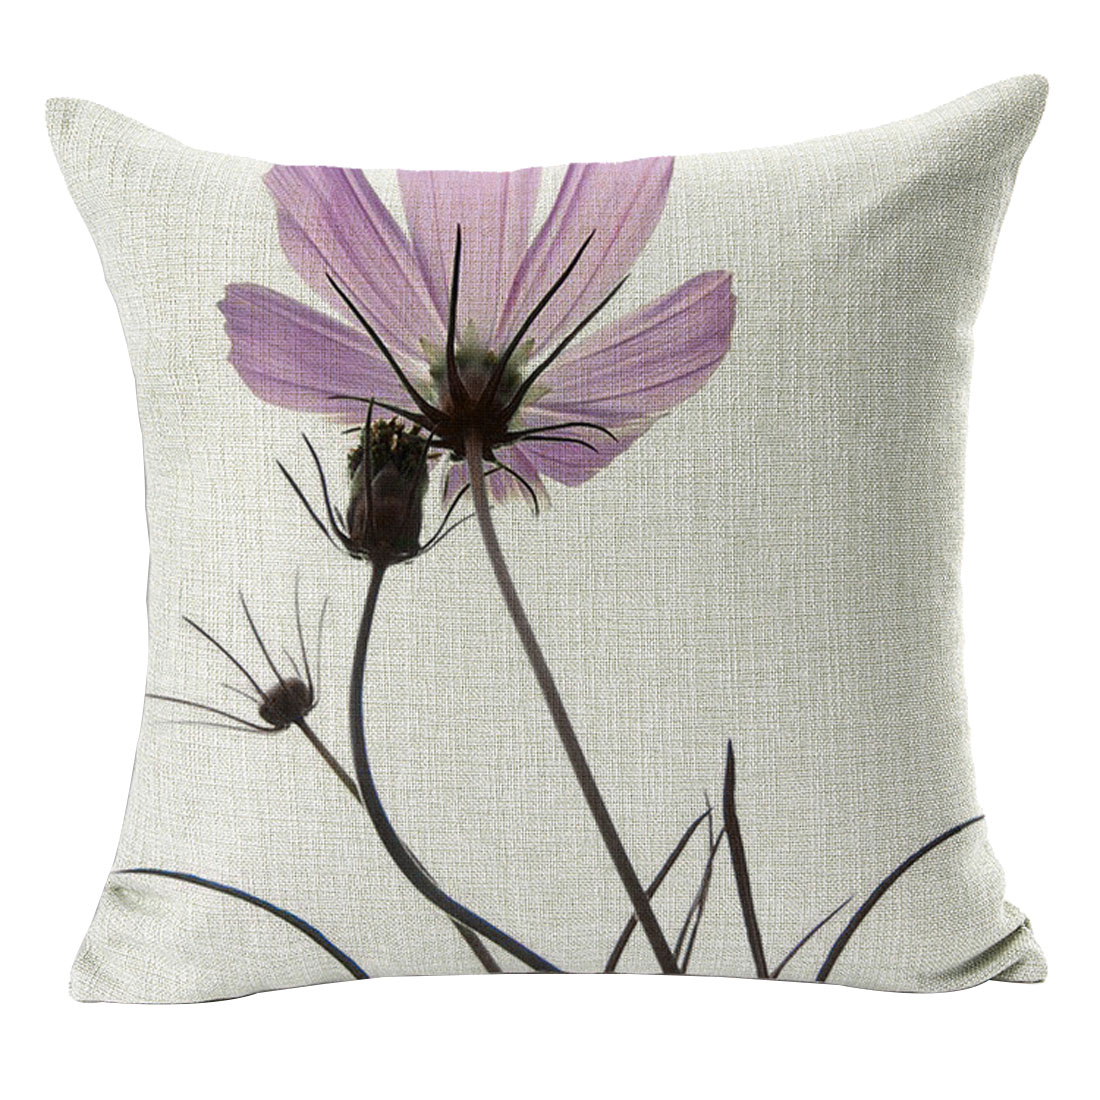 Home Office Sofa Cotton Linen Flower Pattern Square Design Cushion Pillow Cover